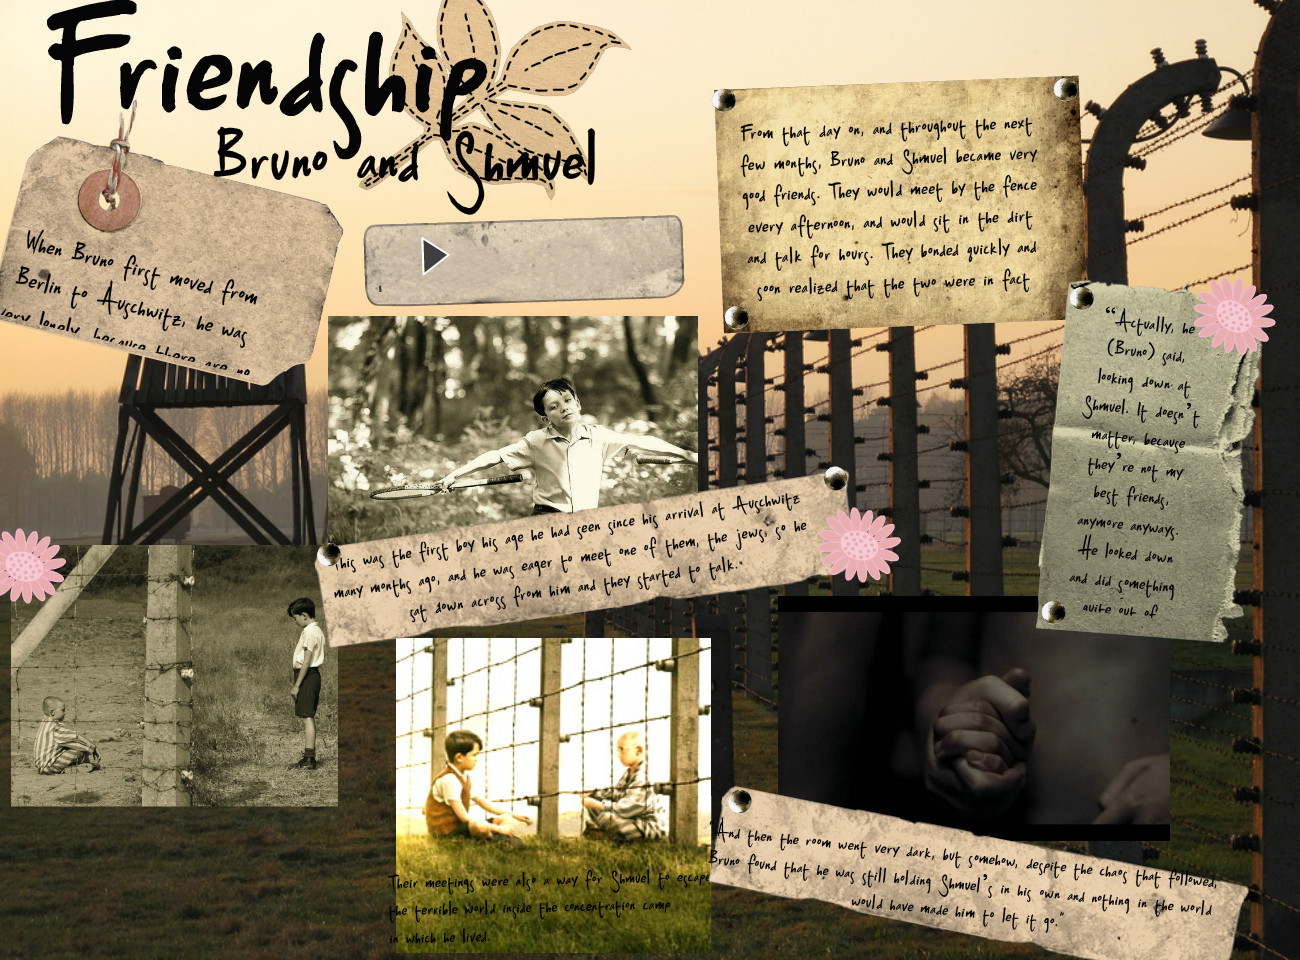 friendship quotes from boy in striped pyjamas the boy in striped friendship quotes from boy in striped pyjamas the boy in striped pajamas goodpsychology